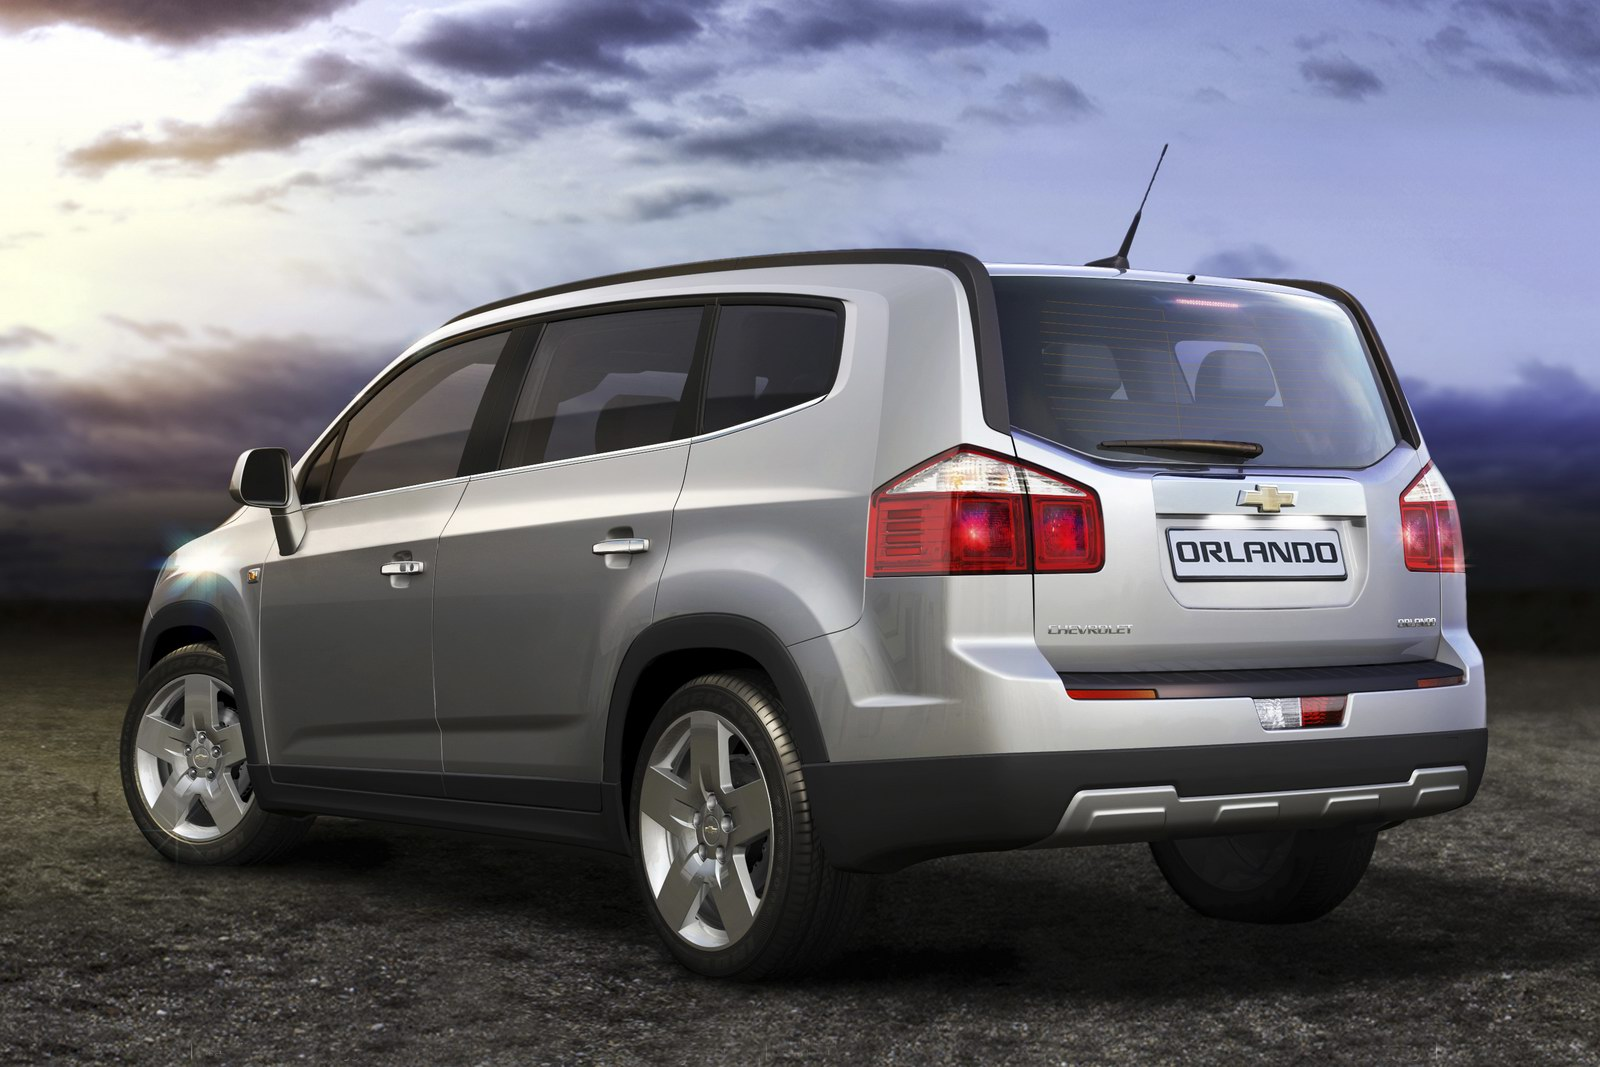 2012 KDM Chevrolet Orlando 1 2012 Chevrolet Orlando to Launch for Giving More Facility to Car Lovers